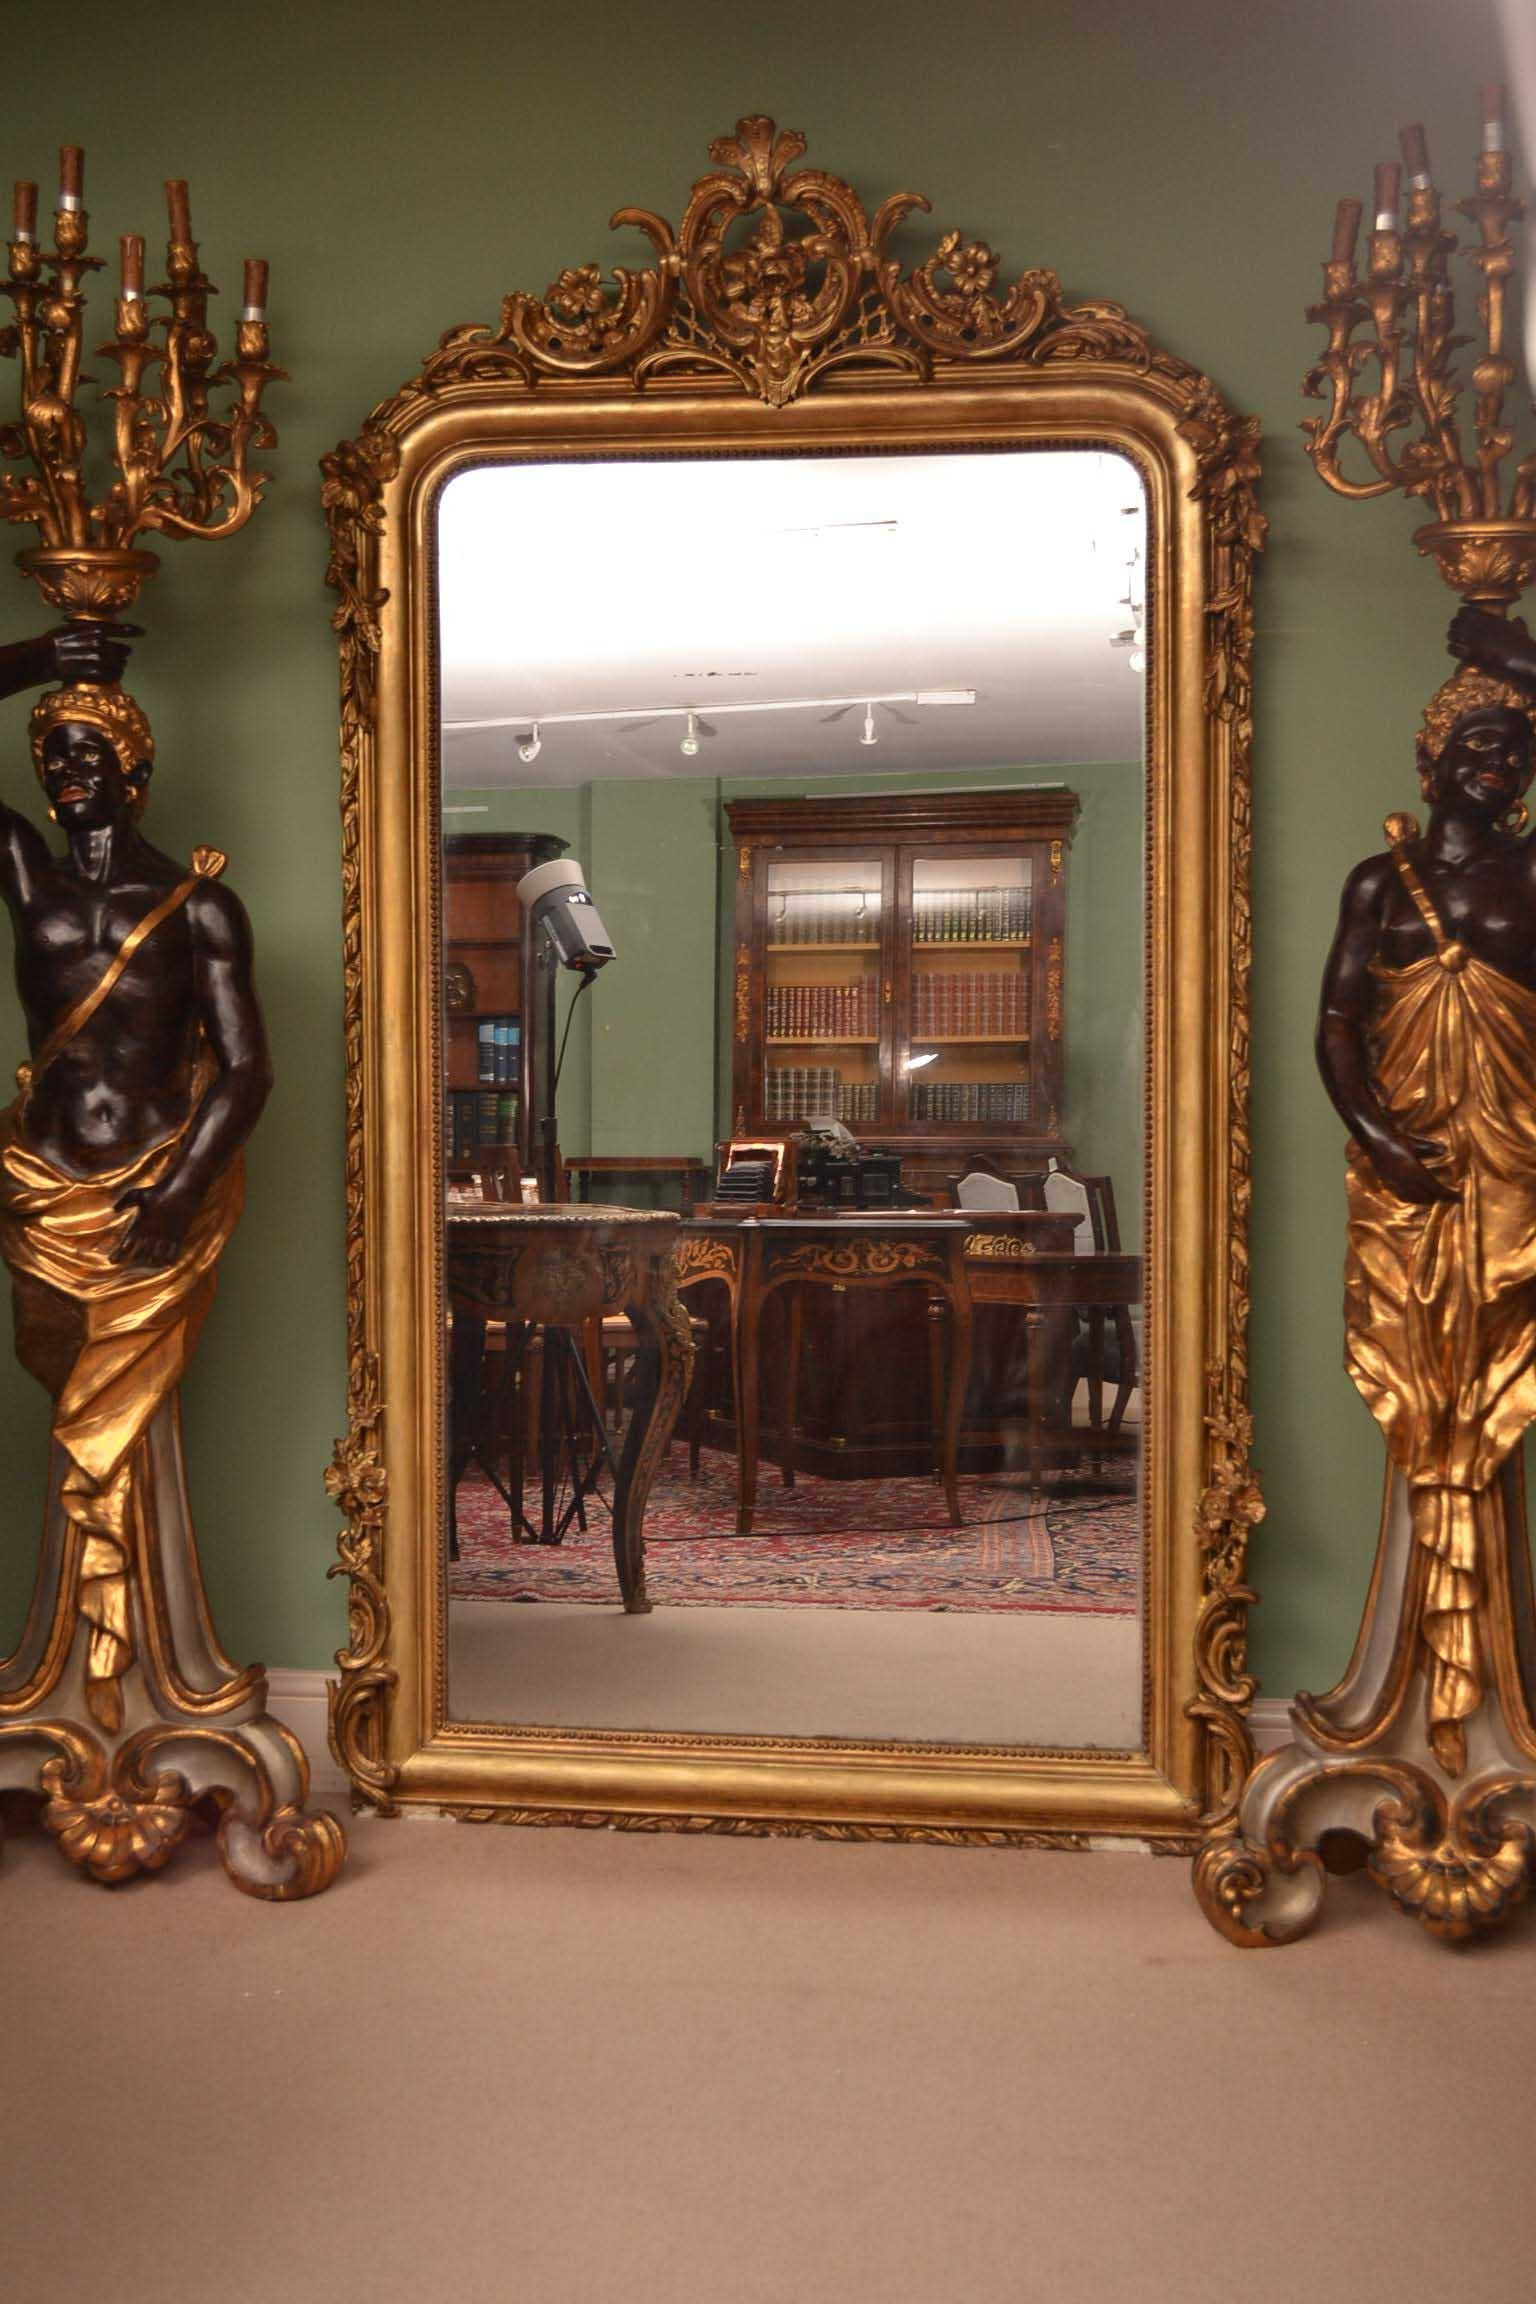 Antique Elegant French Giltwood Overmantle Mirror Within Vintage Overmantle Mirror (Image 1 of 20)